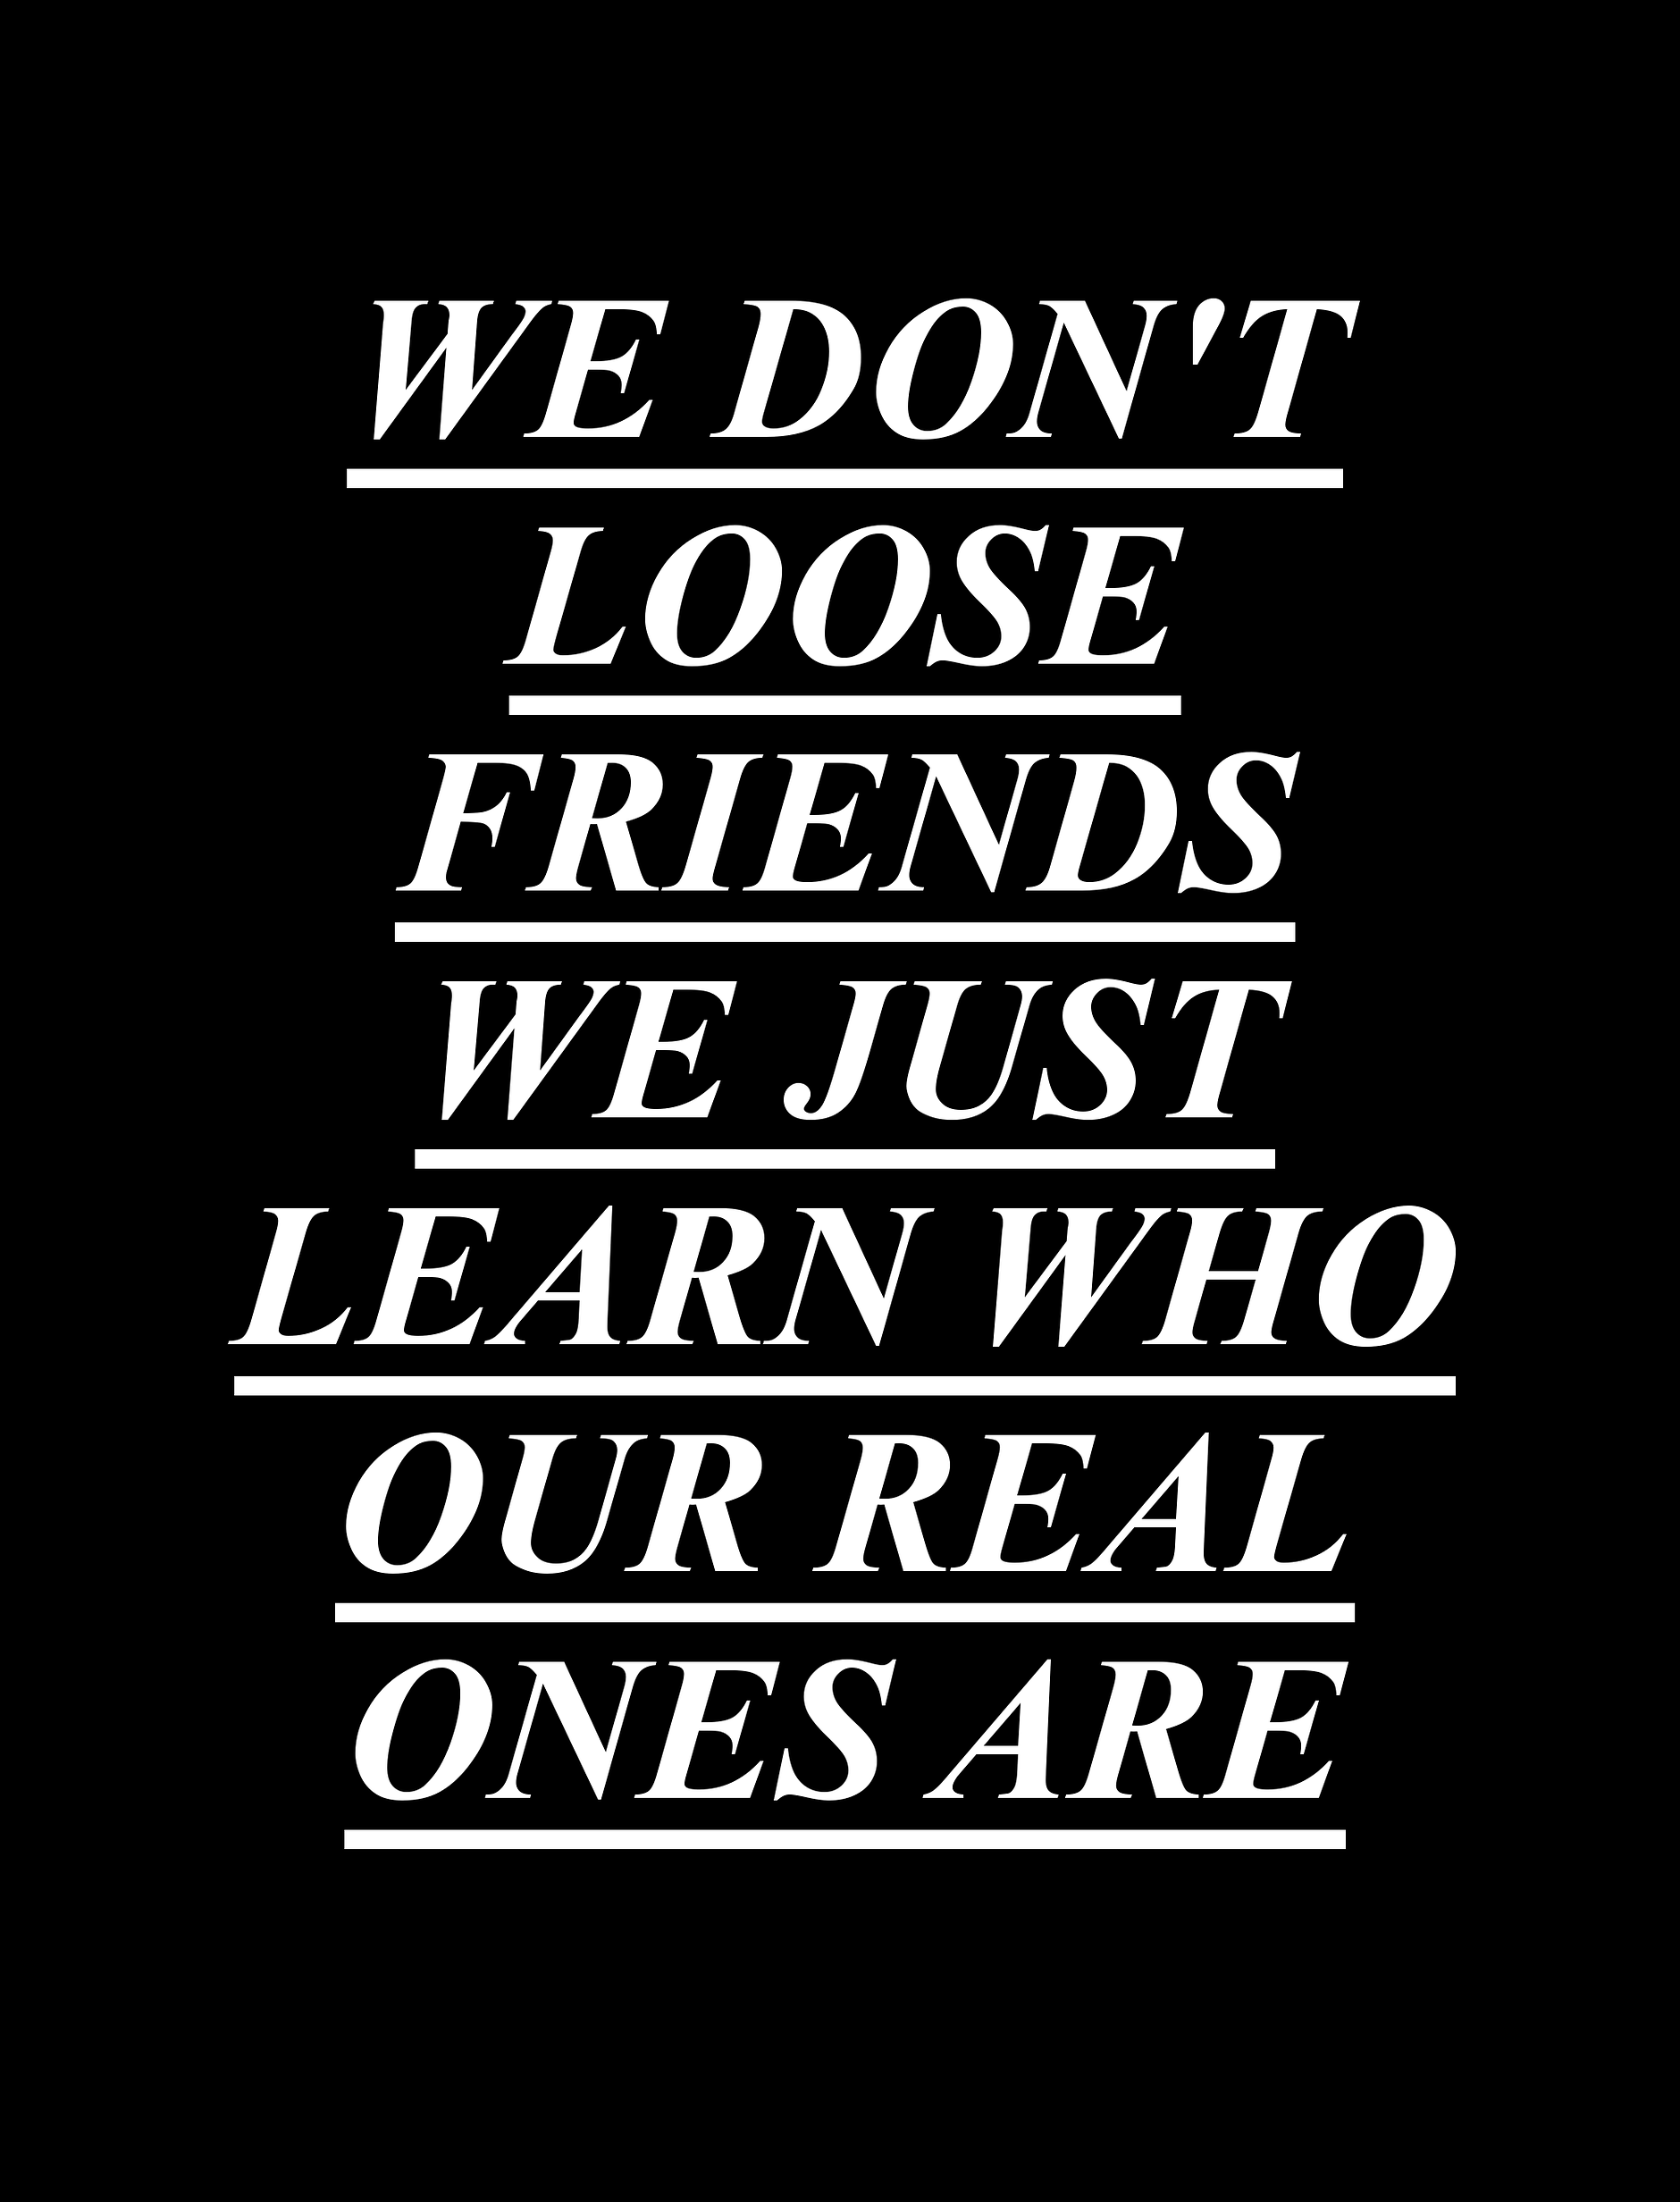 We dont loose friends